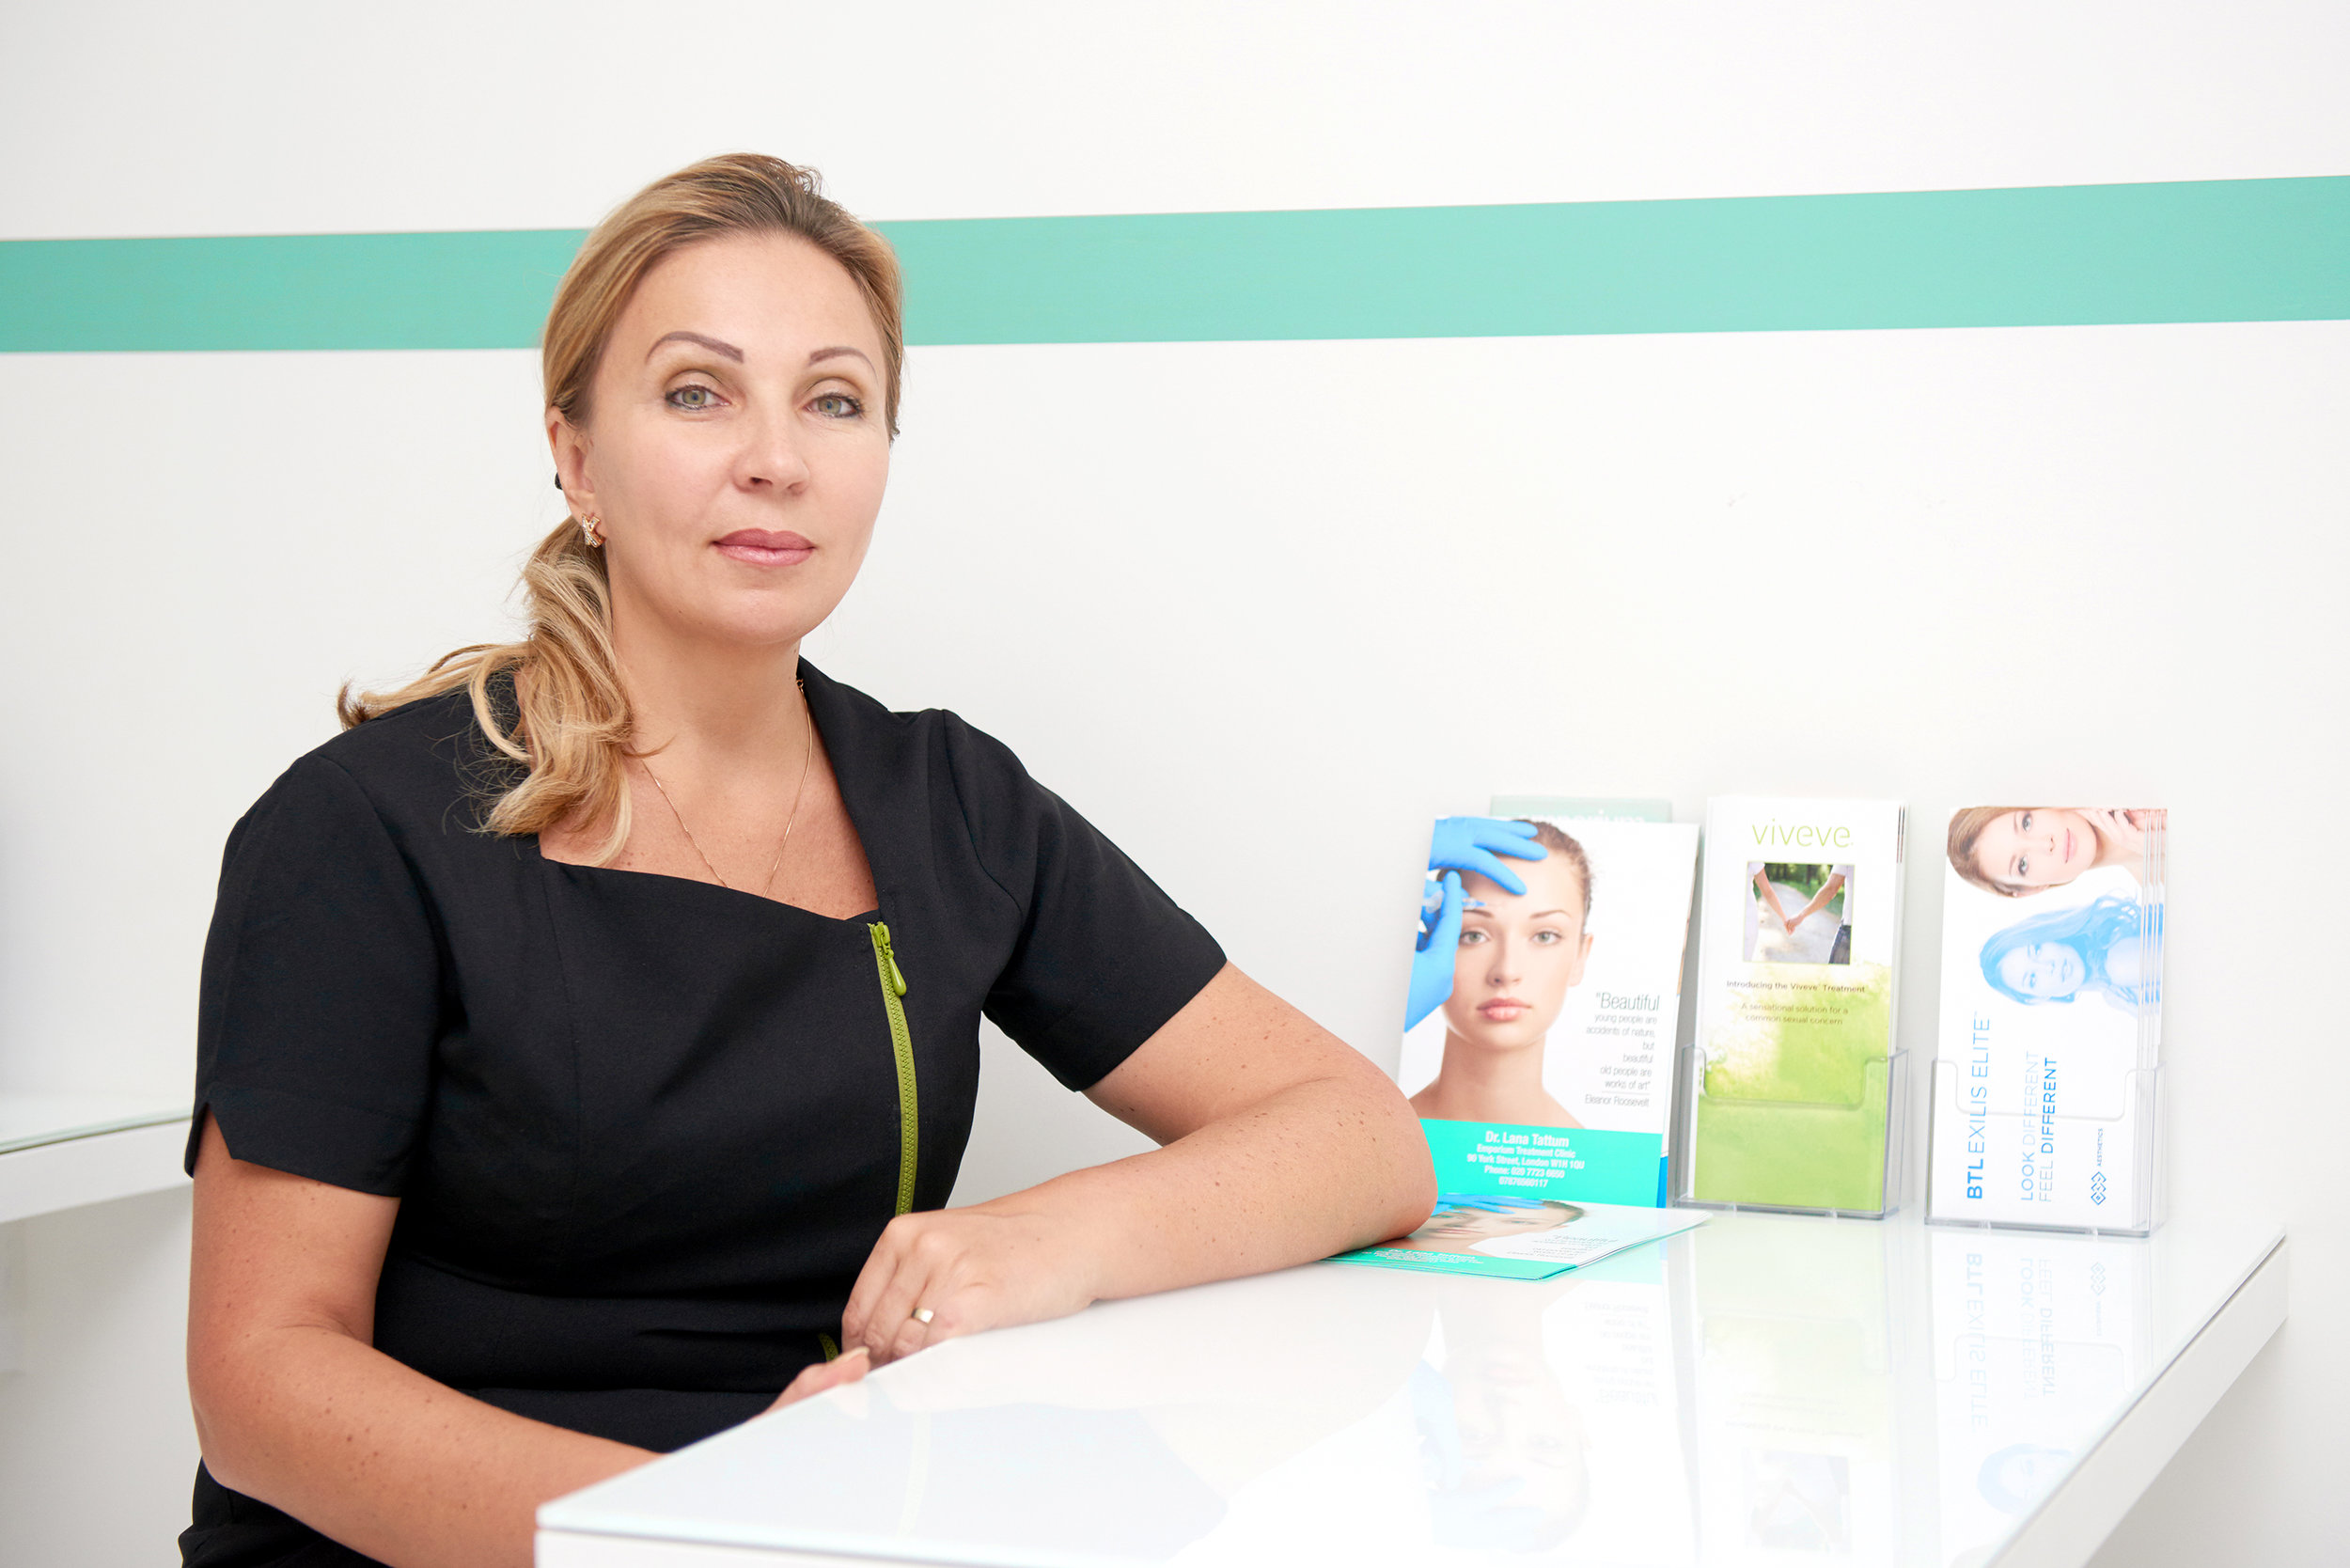 YOUR ARE IN QUALIFIED HANDS - Dr. Lana Tattum is a medicinal professional with over 20 years experience. She worked in the NHS, as a doctor - dedicating her career to helping people. She has now embarked on a new path to make you feel happier and more confident in your own body!